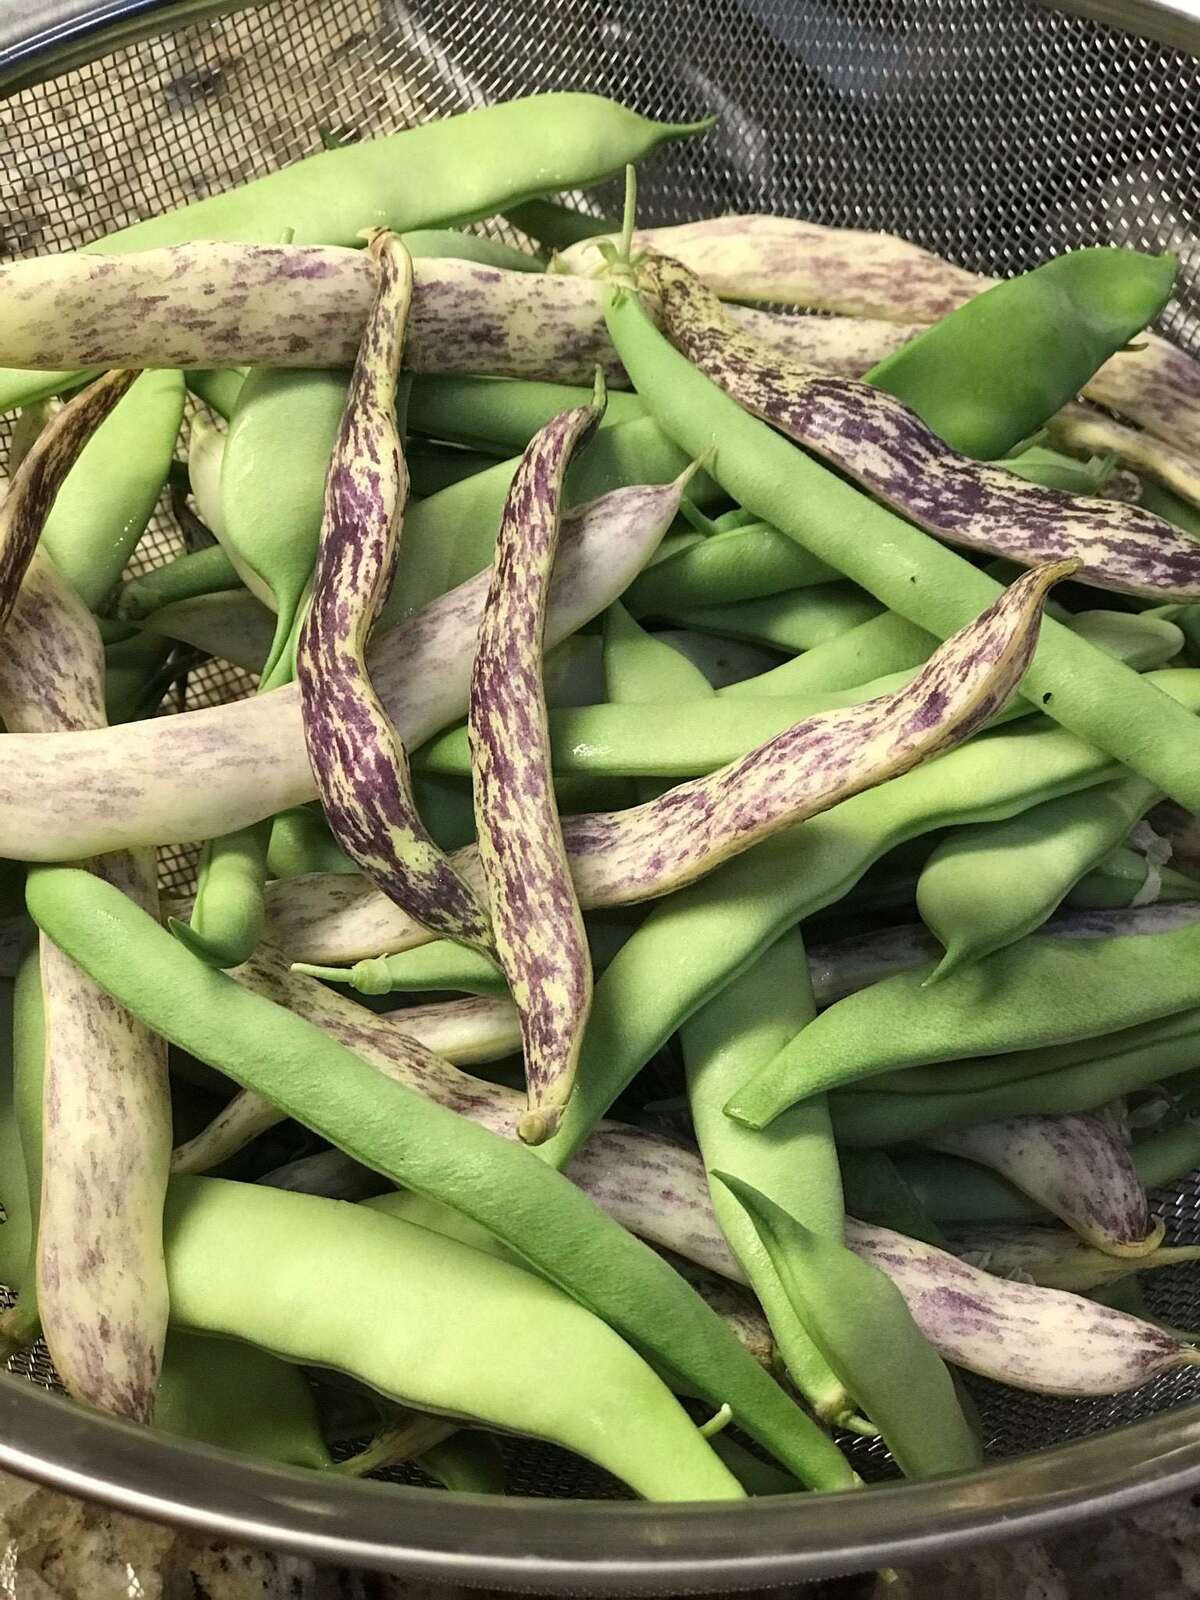 'Dragon's Tongue' bush beans are a pale cream color with purple streaks. When cooked, they turn pale green.